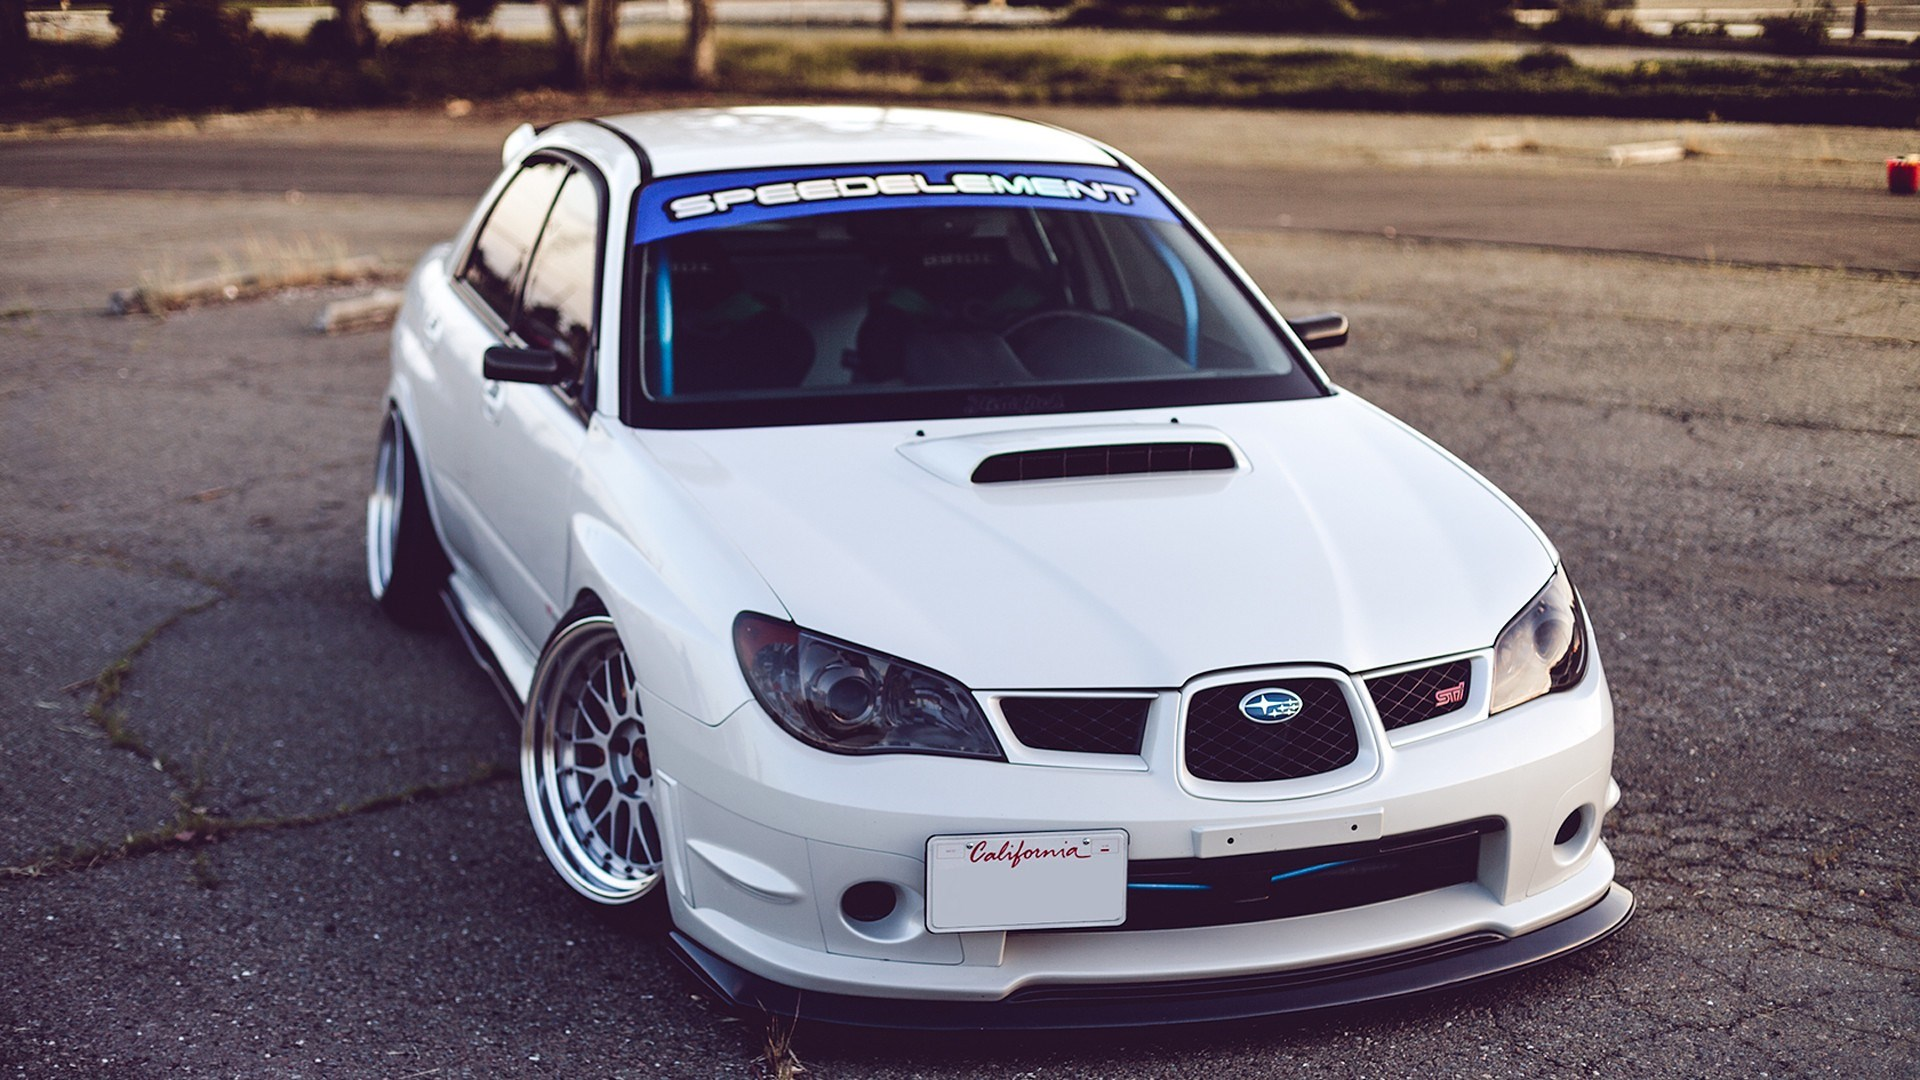 Subaru Impreza WRX STI Close-Up